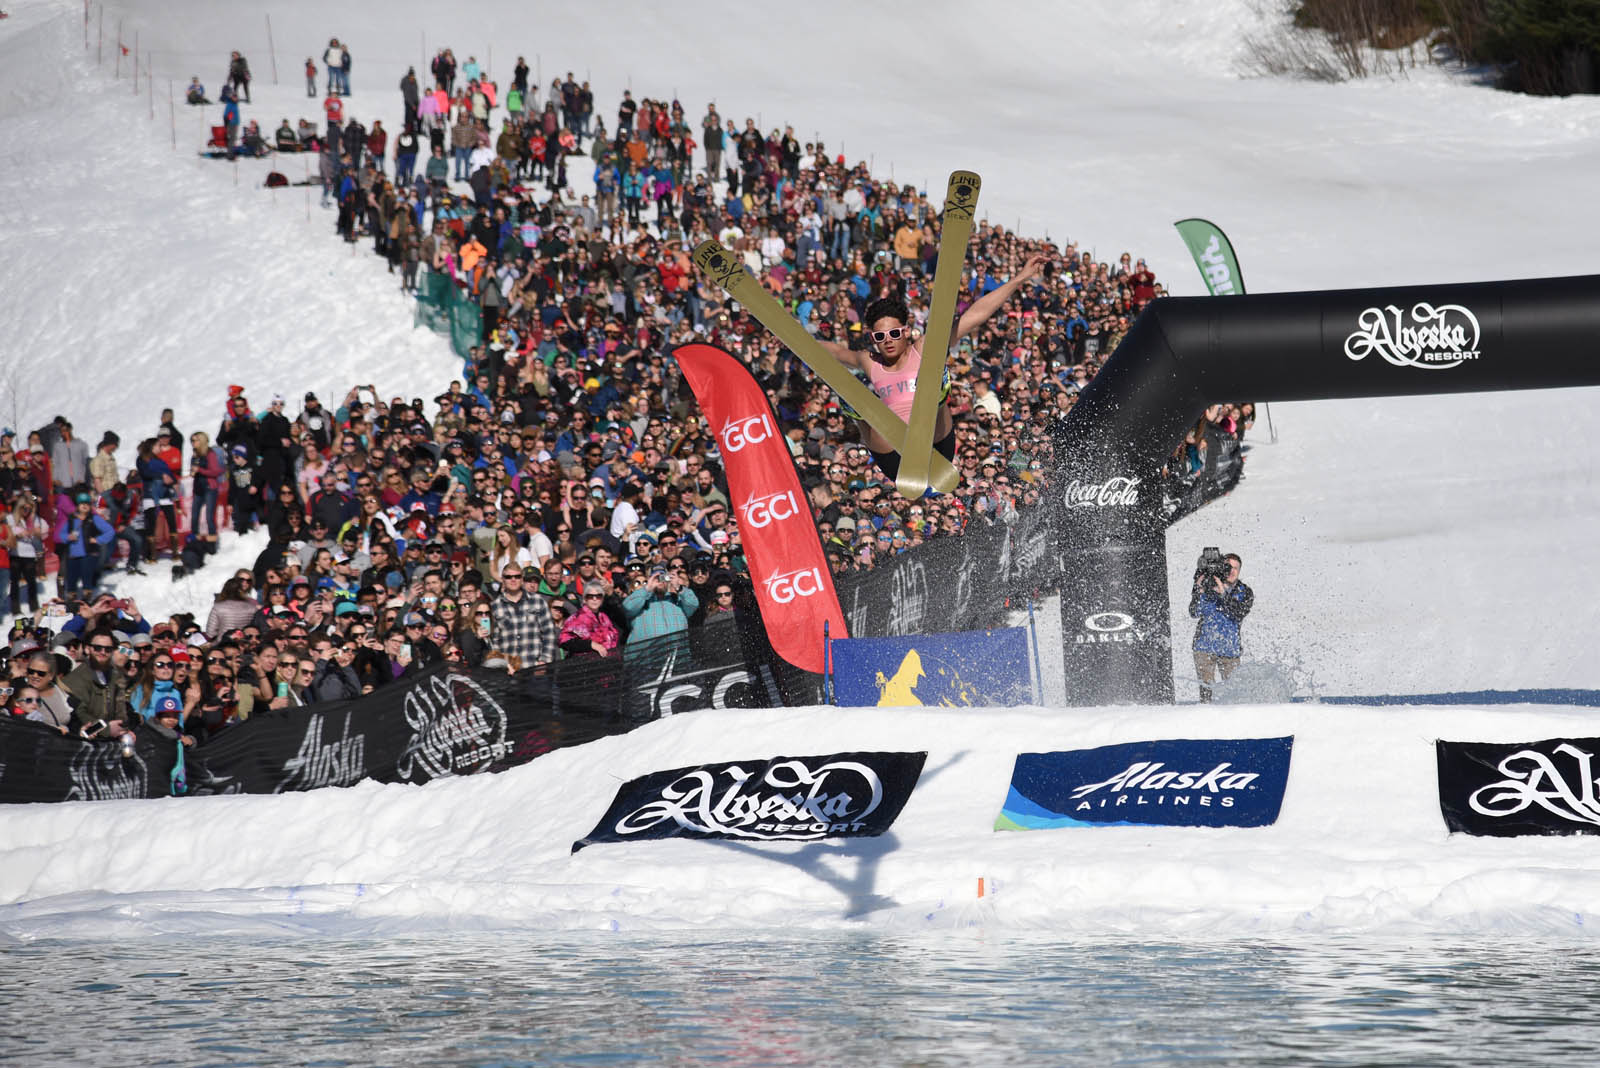 Skiers at the 2018 Alyeska Slush Cup